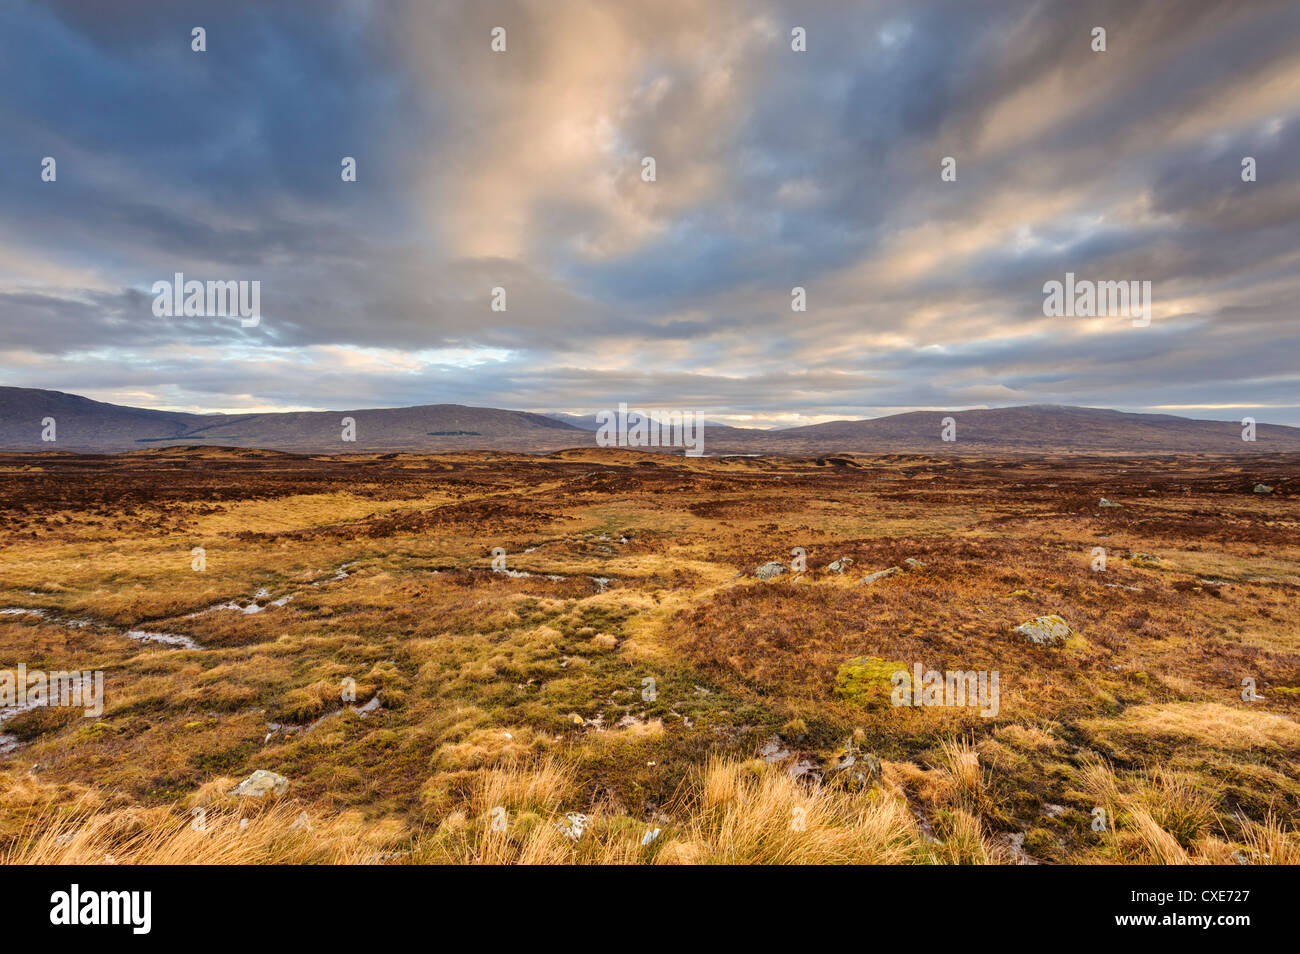 Dawn over open expanse of Rannoch Moor, near Glencoe, Scottish Highlands, Scotland - Stock Image